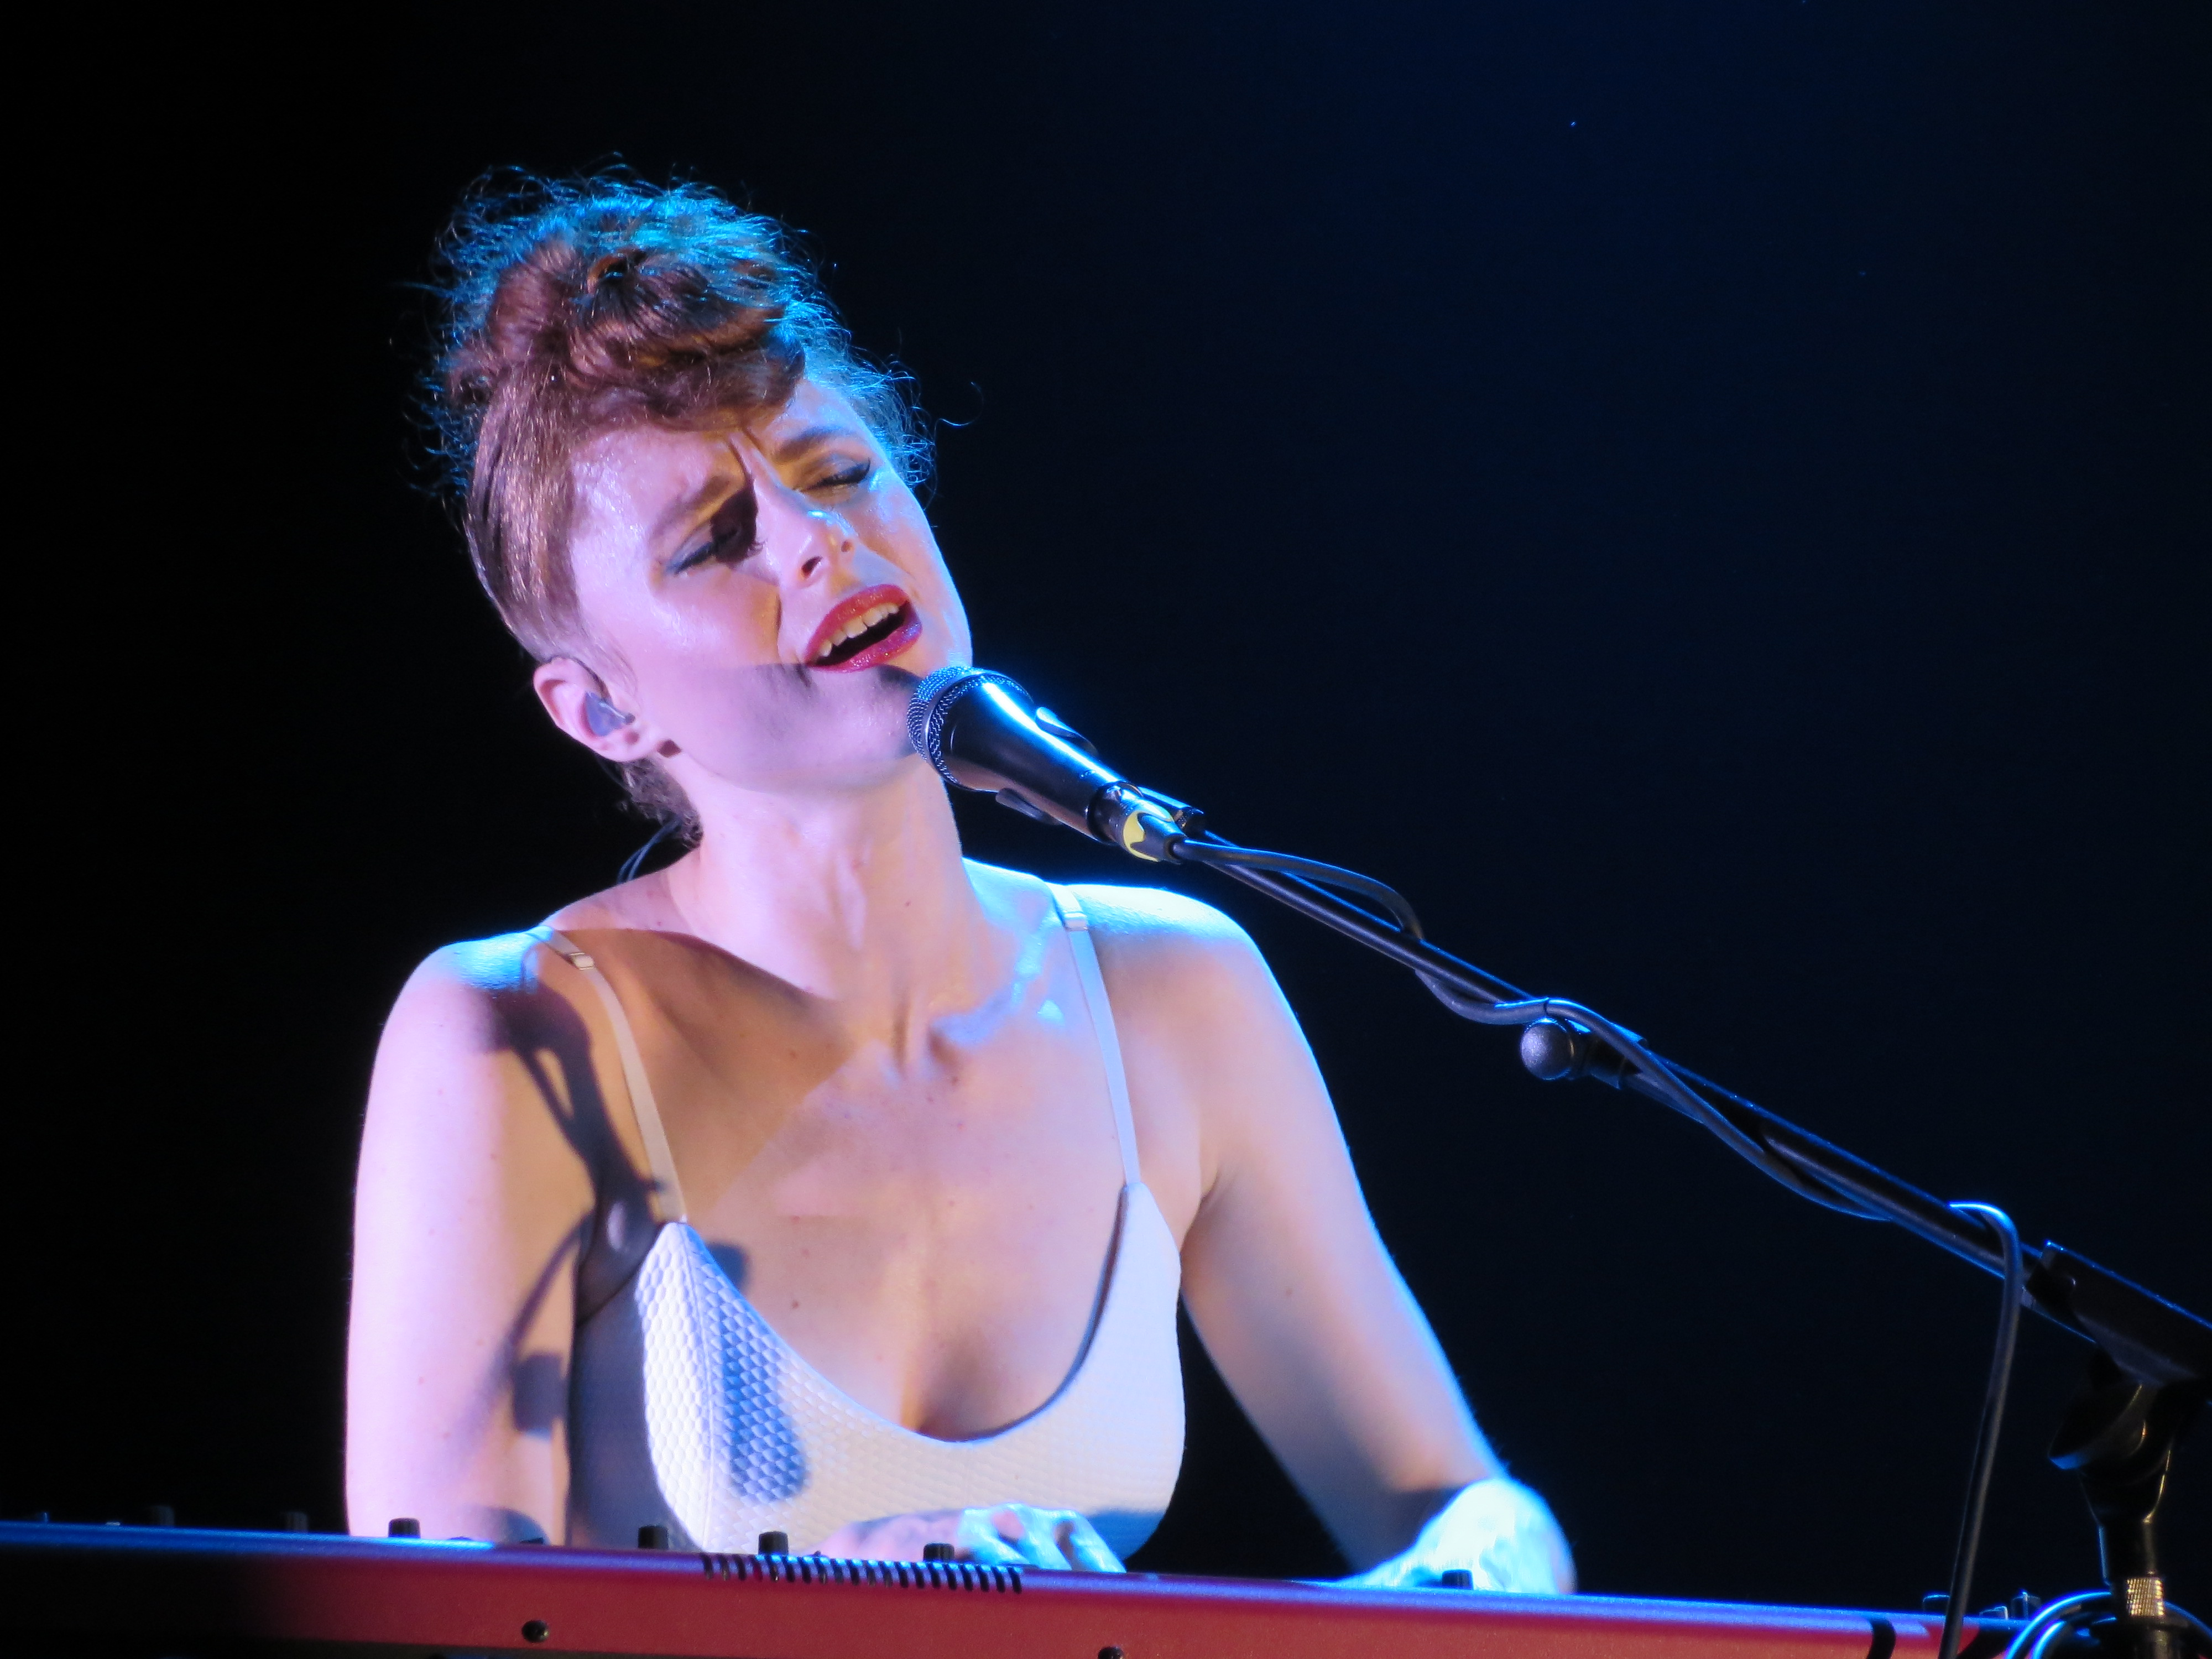 A Bit Of Pop MusicMain menuPost navigationGig Review: Kiesza at ParadisoPost navigationSocialLike A Bit of Pop Music on FacebookSong of the Moment: Agnes – I TranceAlbum of the Moment: Madonna – Madame XMost read articlesCategoriesMetaArchives